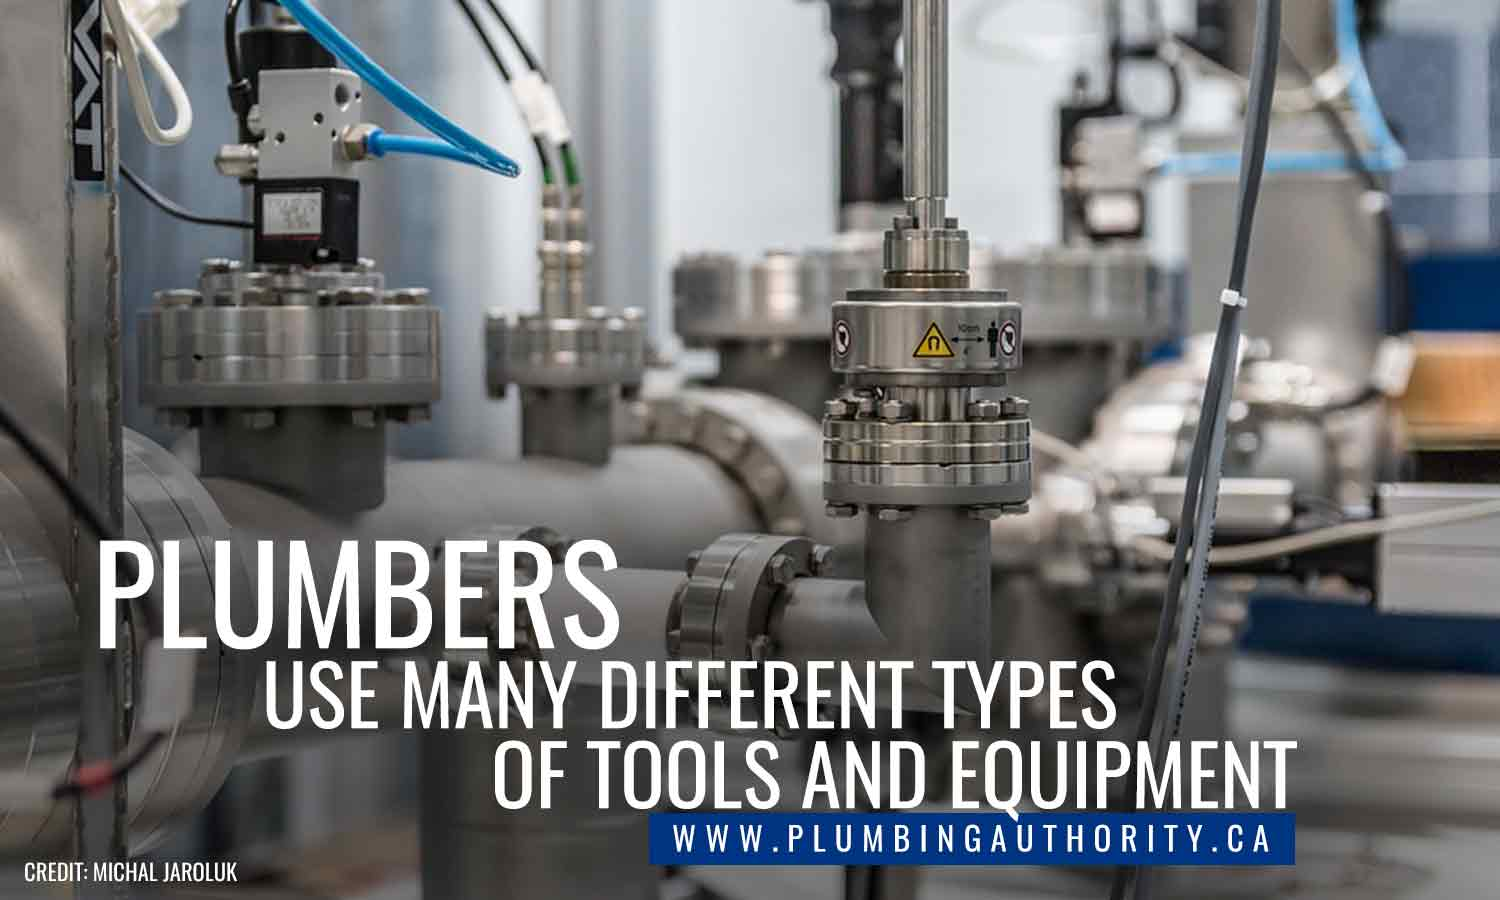 Plumbers use many different types of tools and equipment